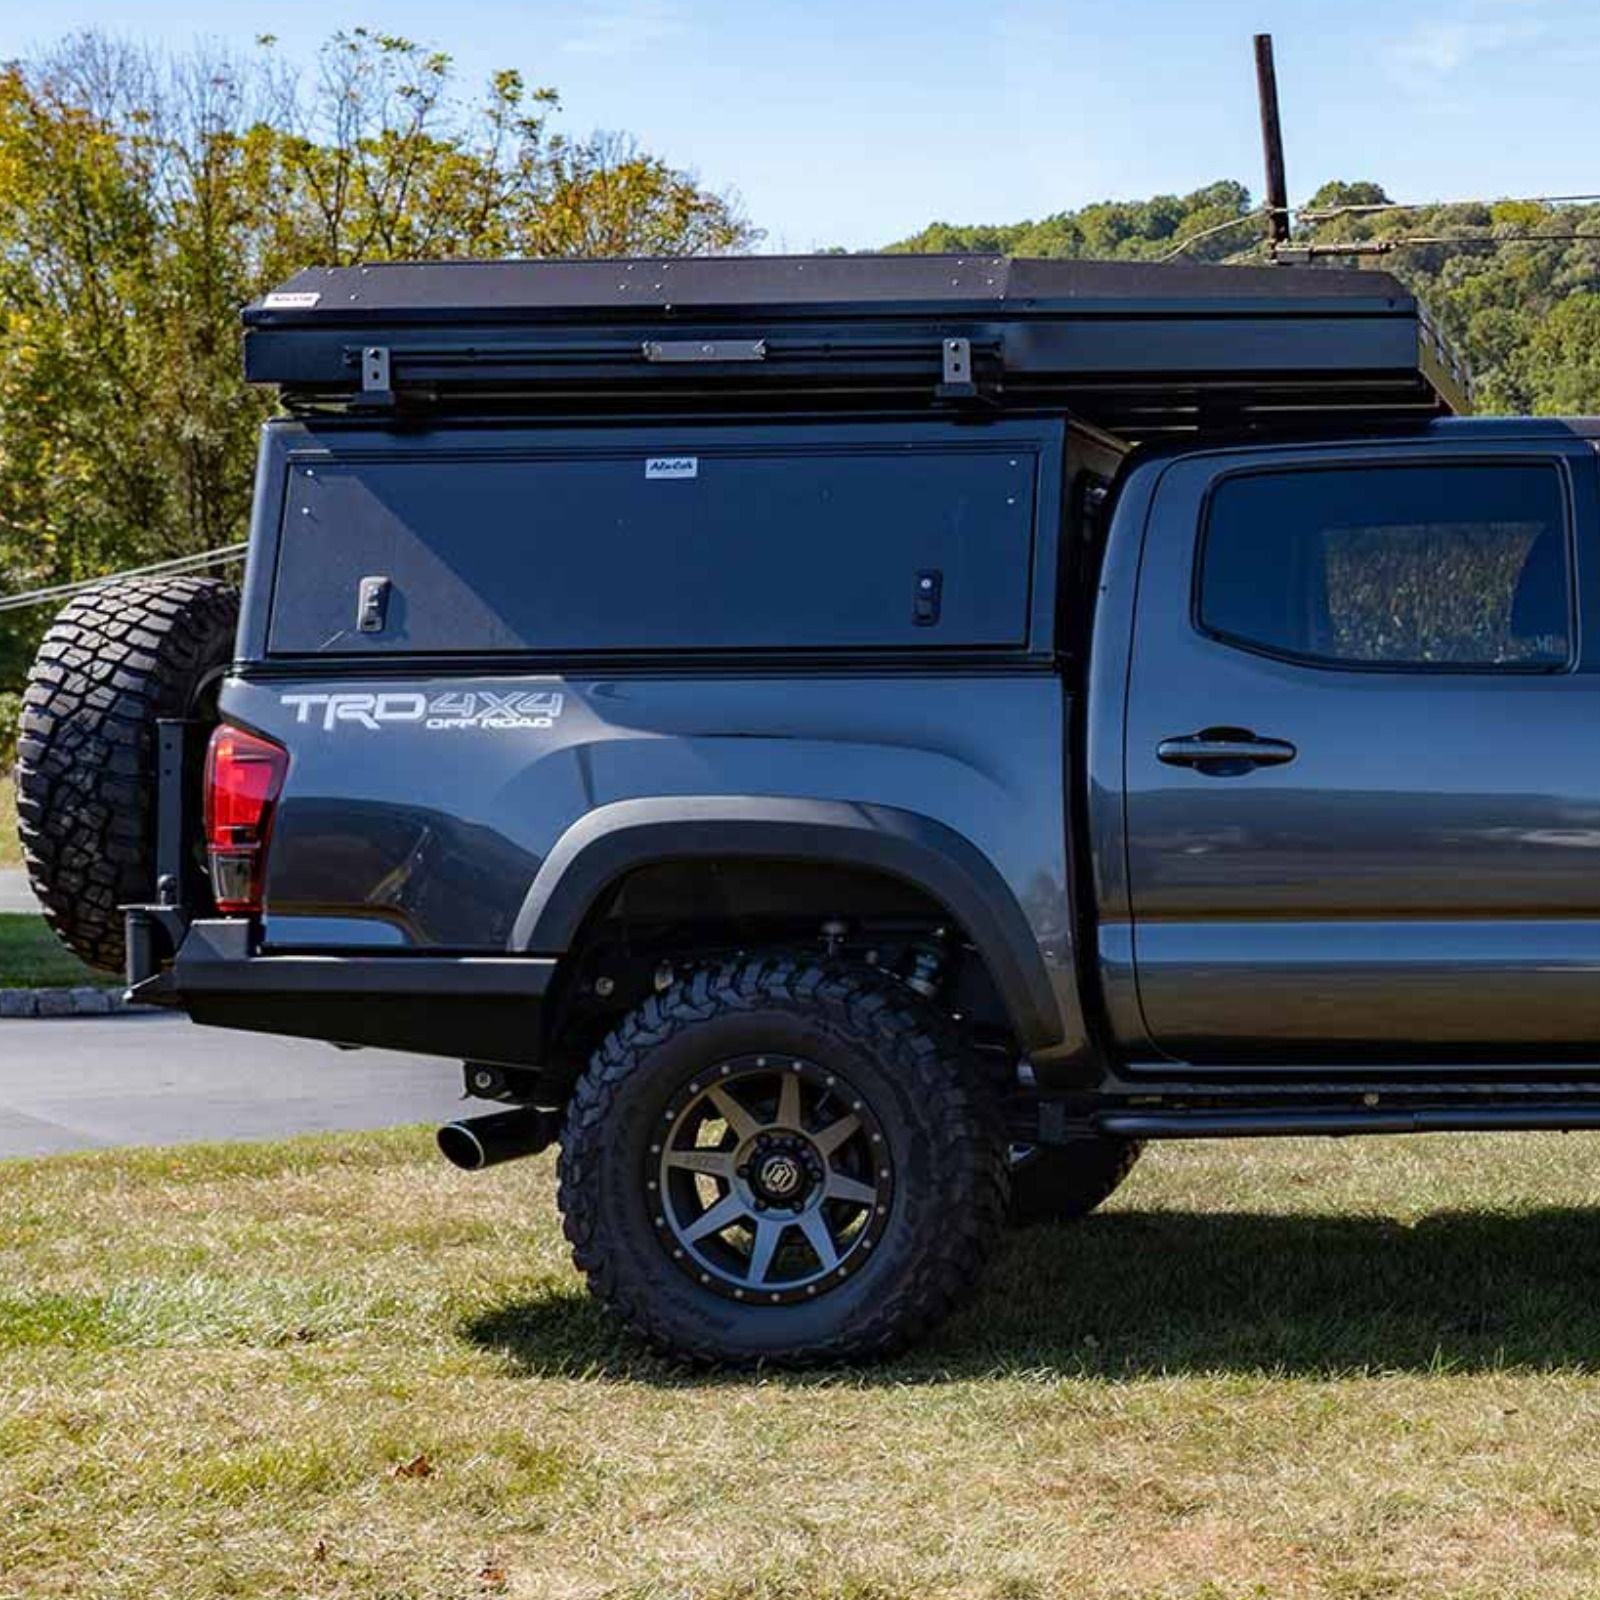 J Adore Tepui Hard Shell Rooftop Tent Rooftop Tent Camping Road Trip Road Trip Fun